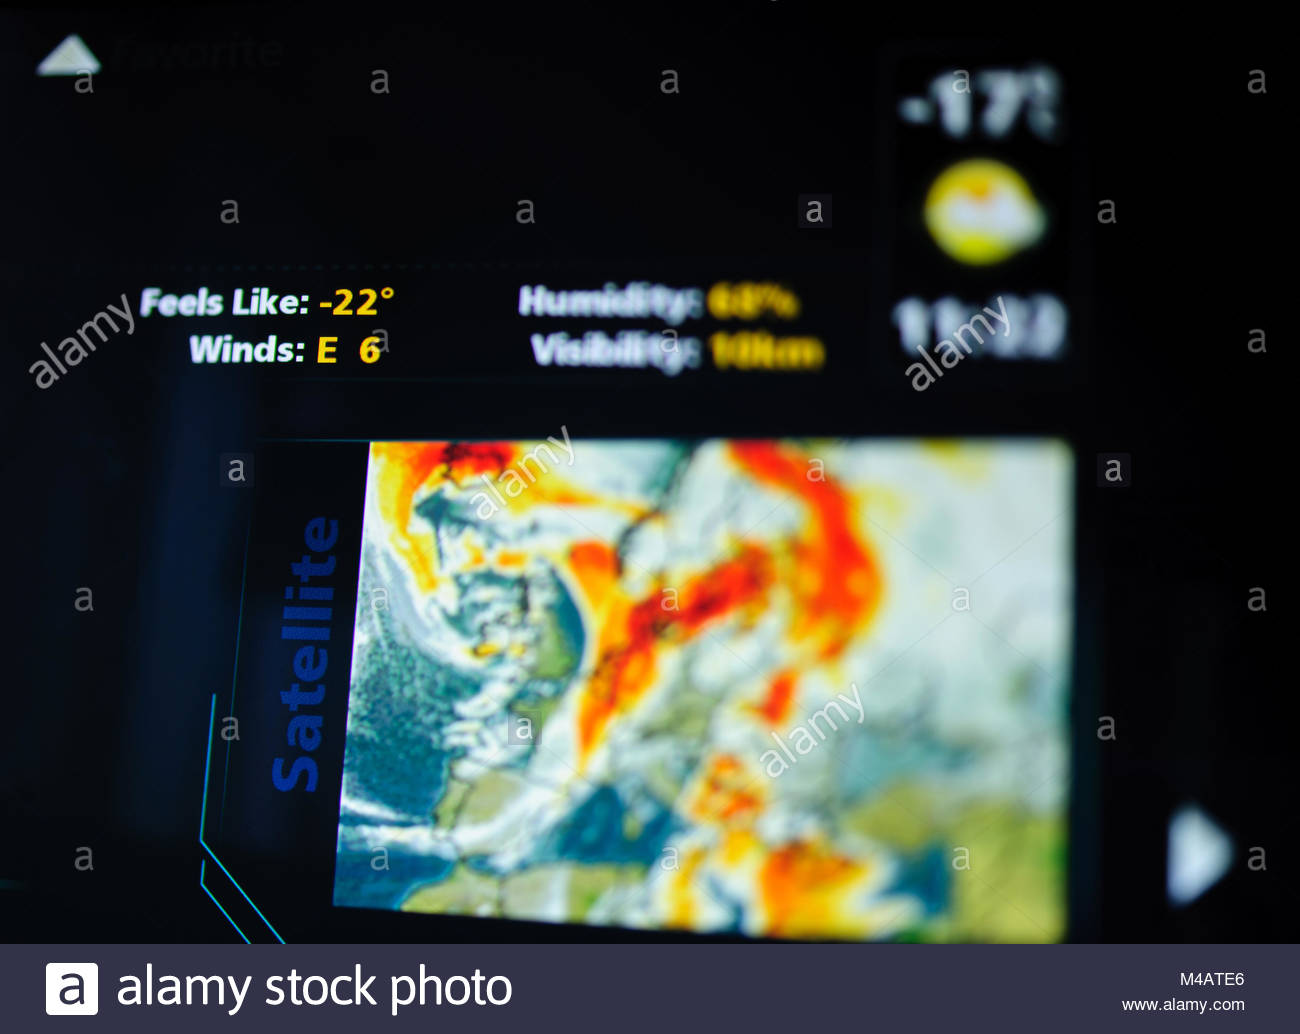 Digital weather forecast interface on a modern digital display - Stock Image